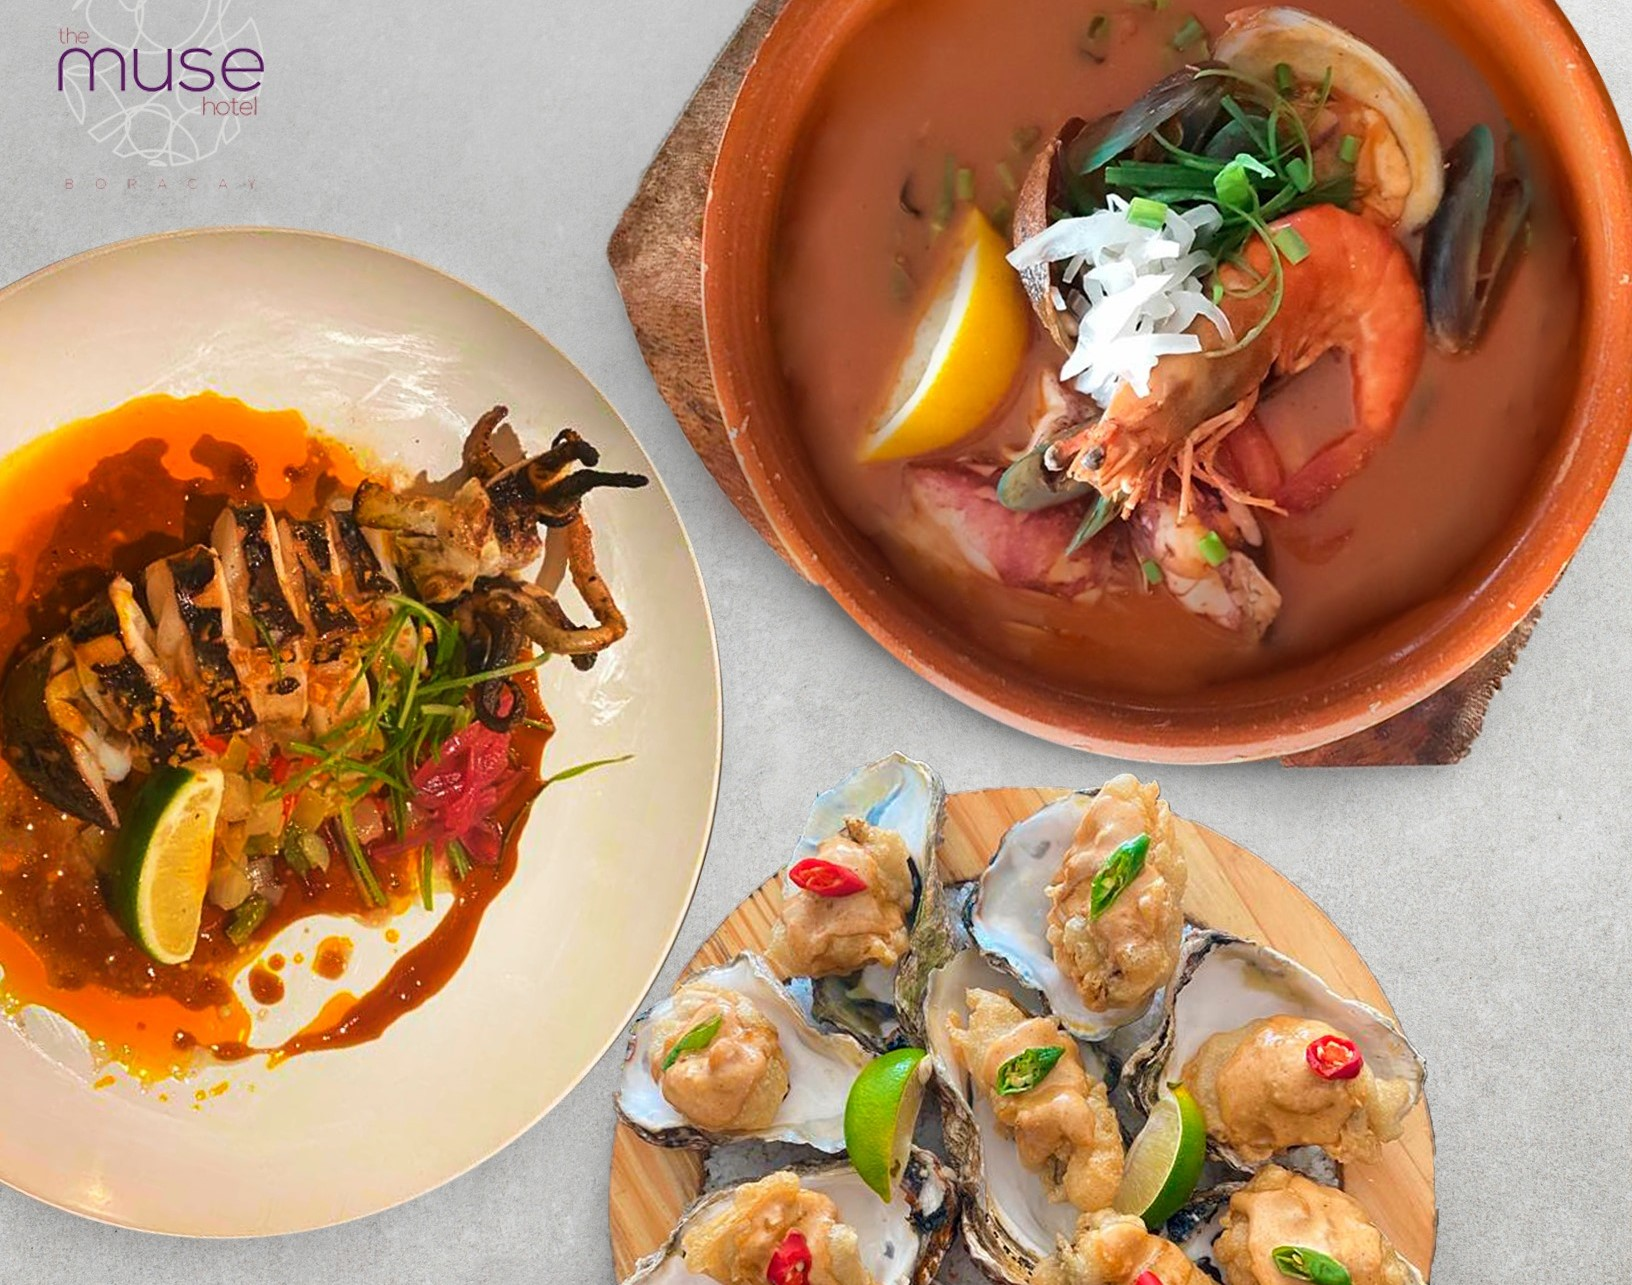 Mouthwatering food at a restaurant in The Muse Hotel